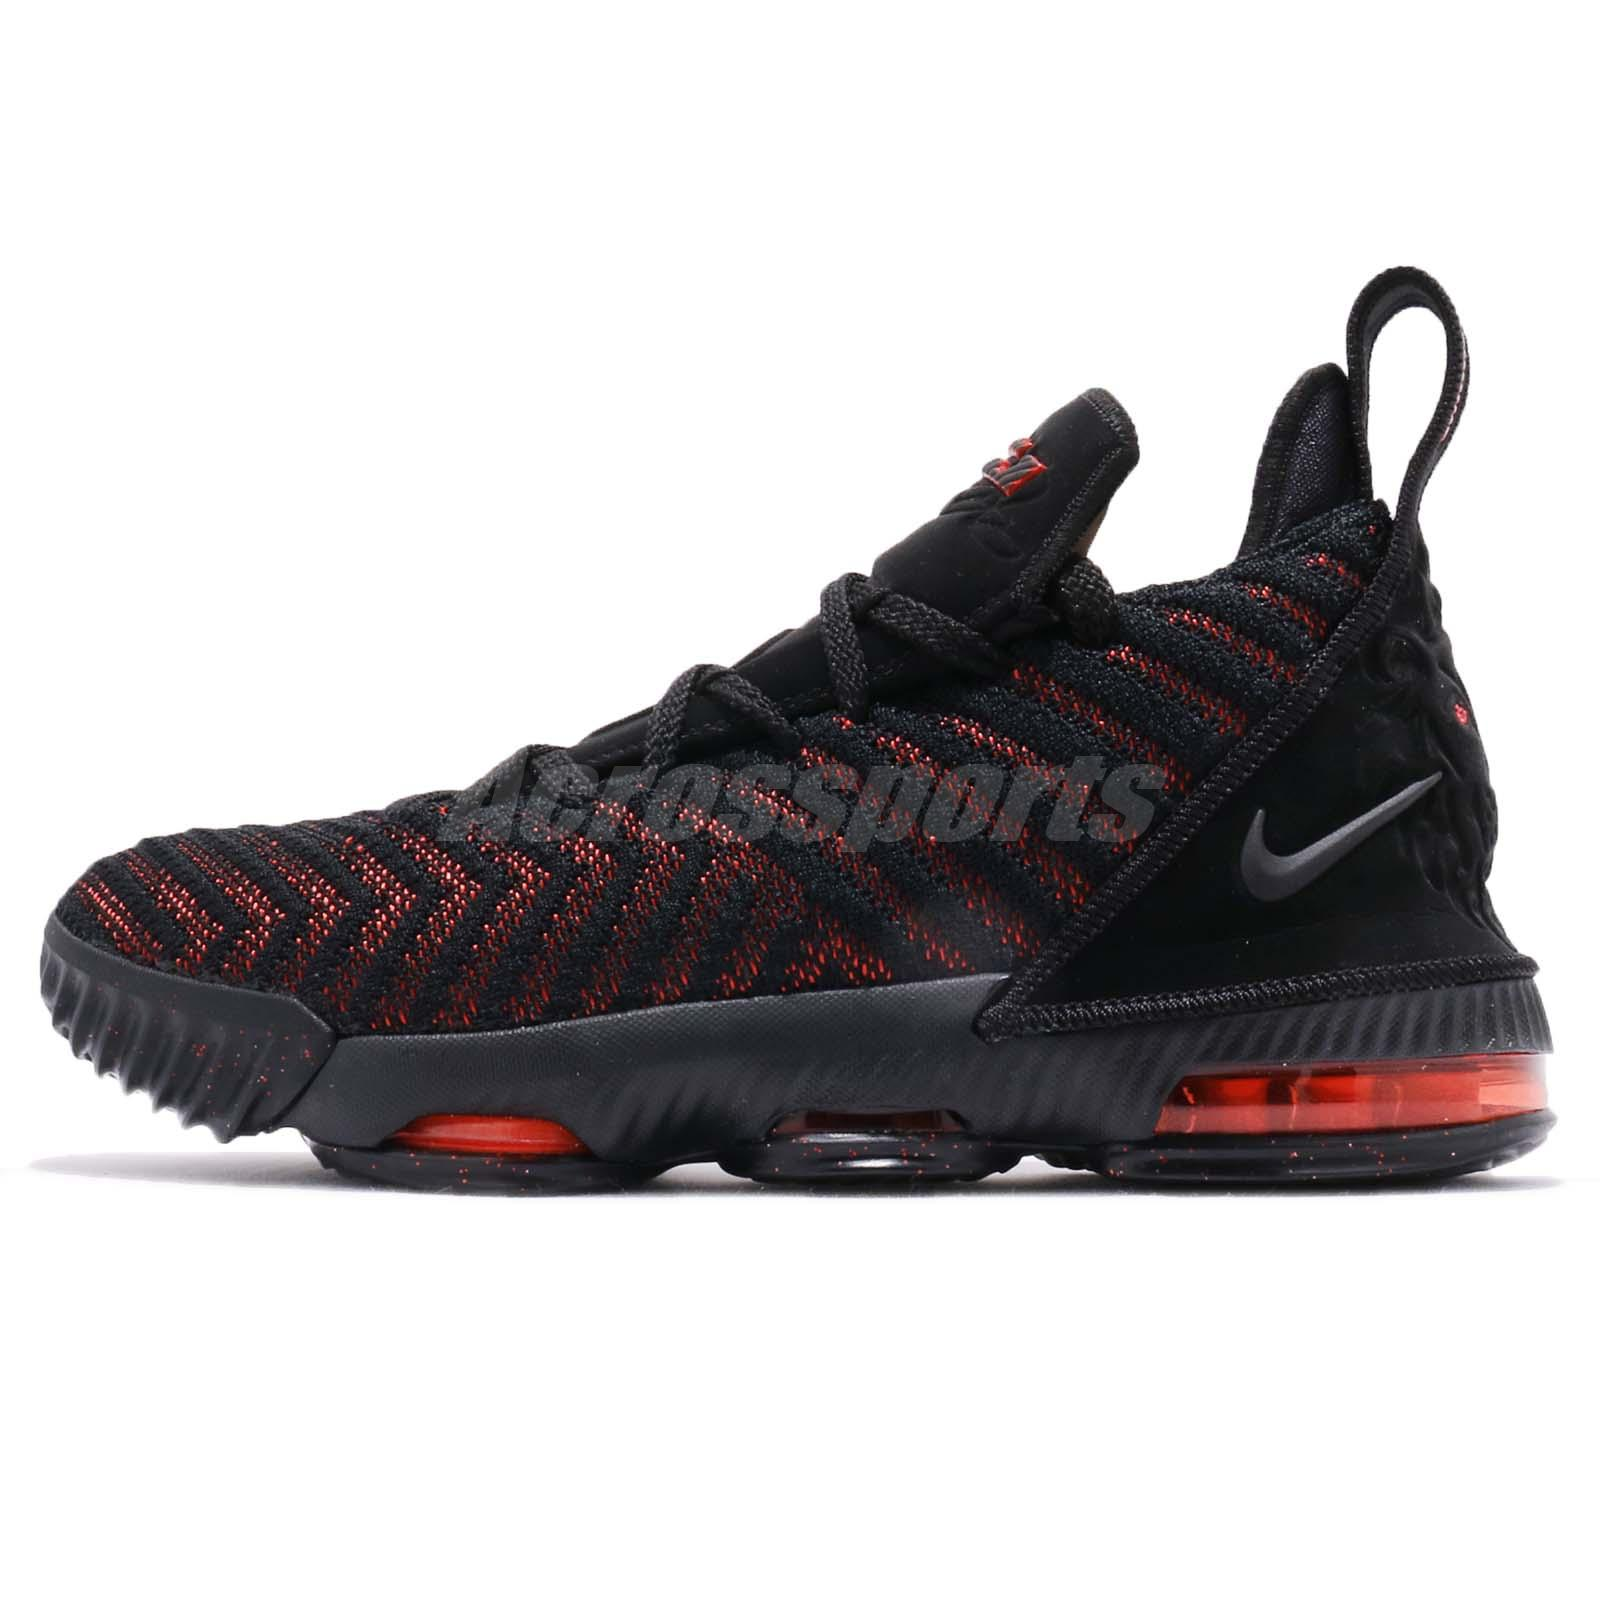 906c9317f2c Nike Lebron XVI GS 16 James LBJ Fresh Bred KID Women Youth Shoes AQ2465-002